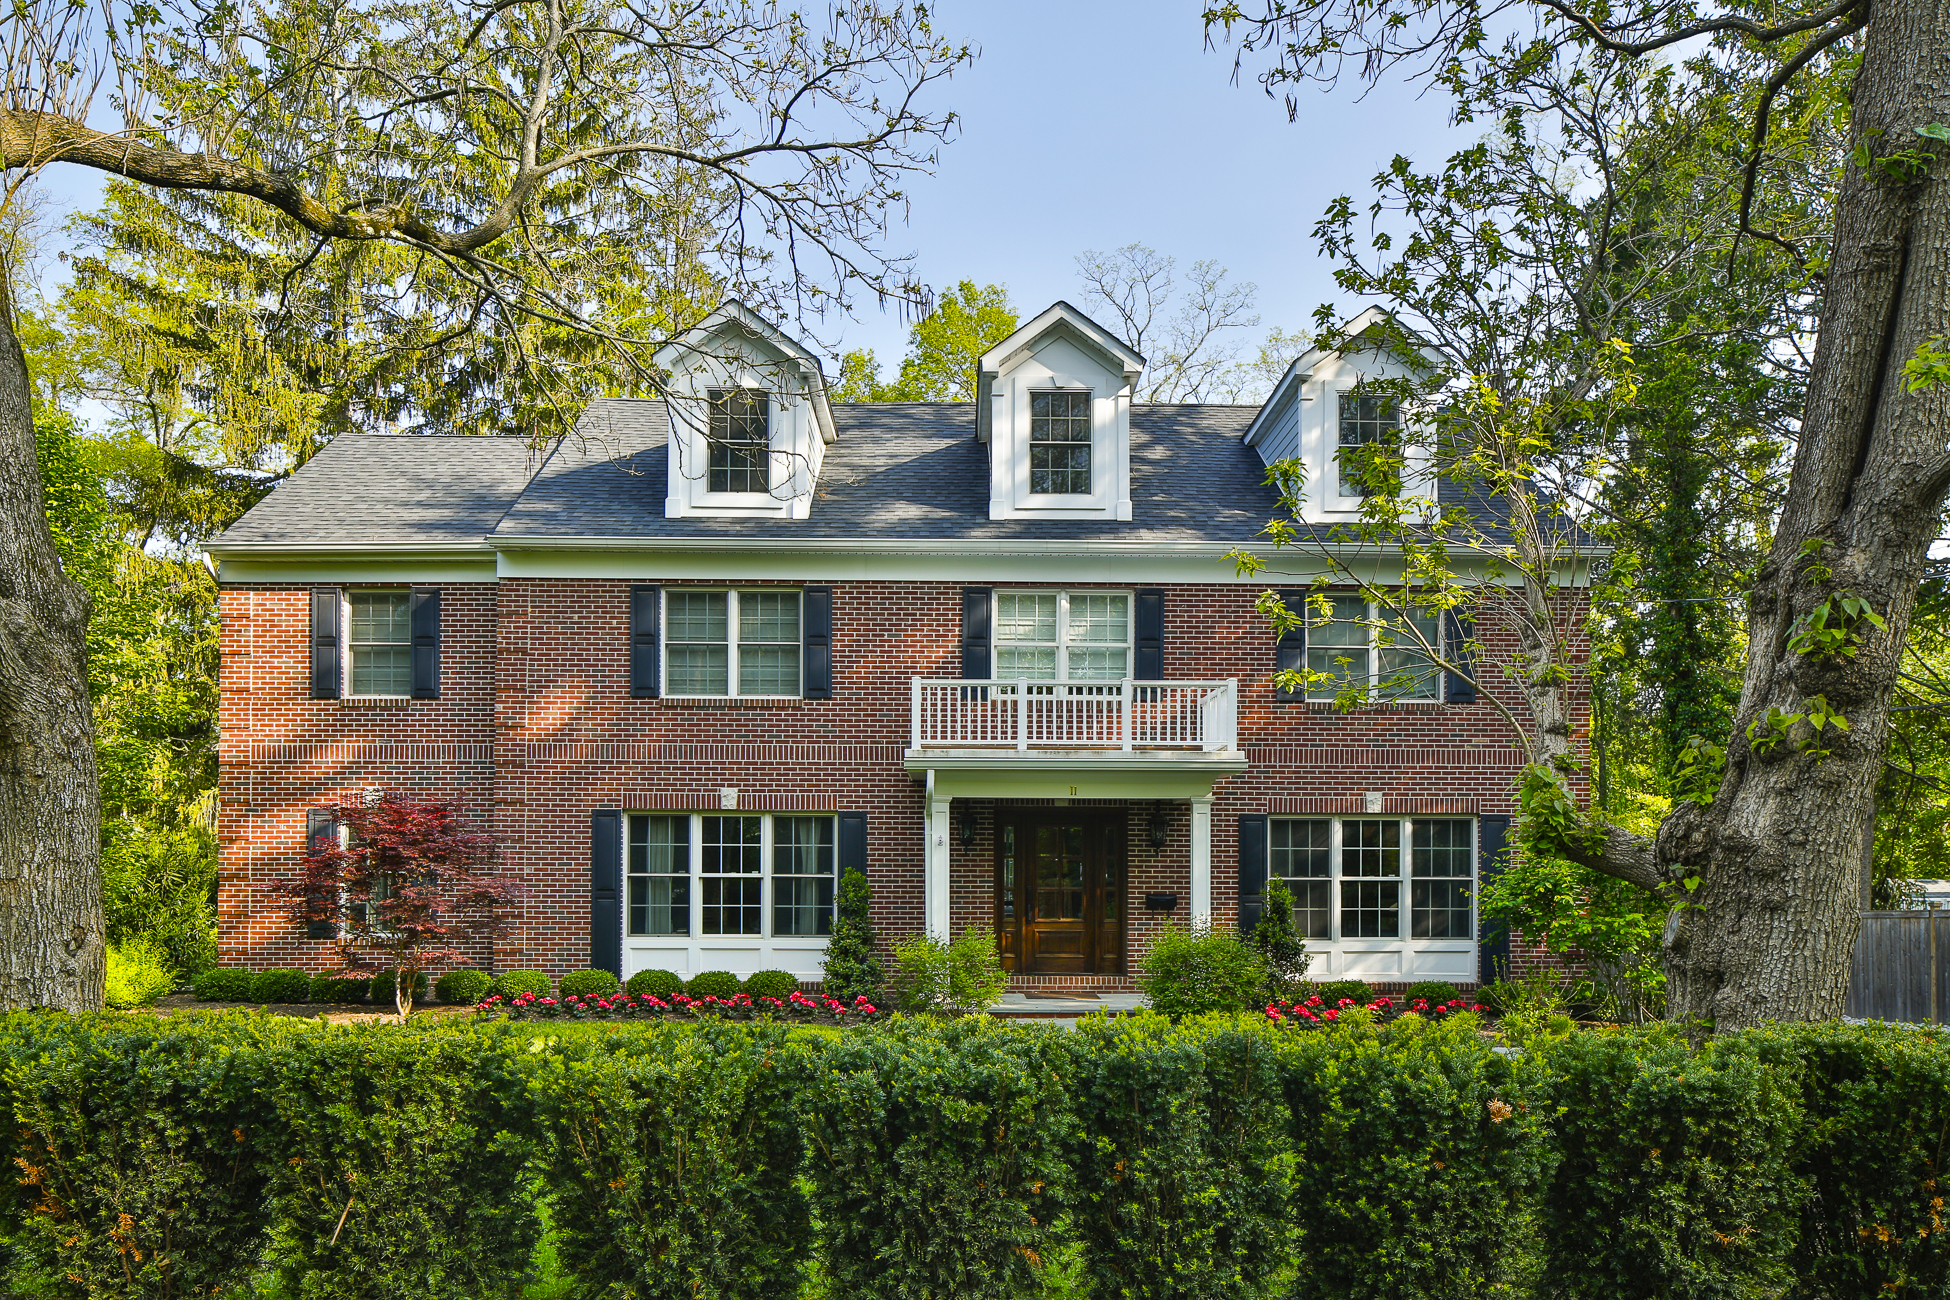 단독 가정 주택 용 매매 에 Splendid New Home with Dash of History 11 Westcott Road Princeton, 뉴저지, 08540 미국